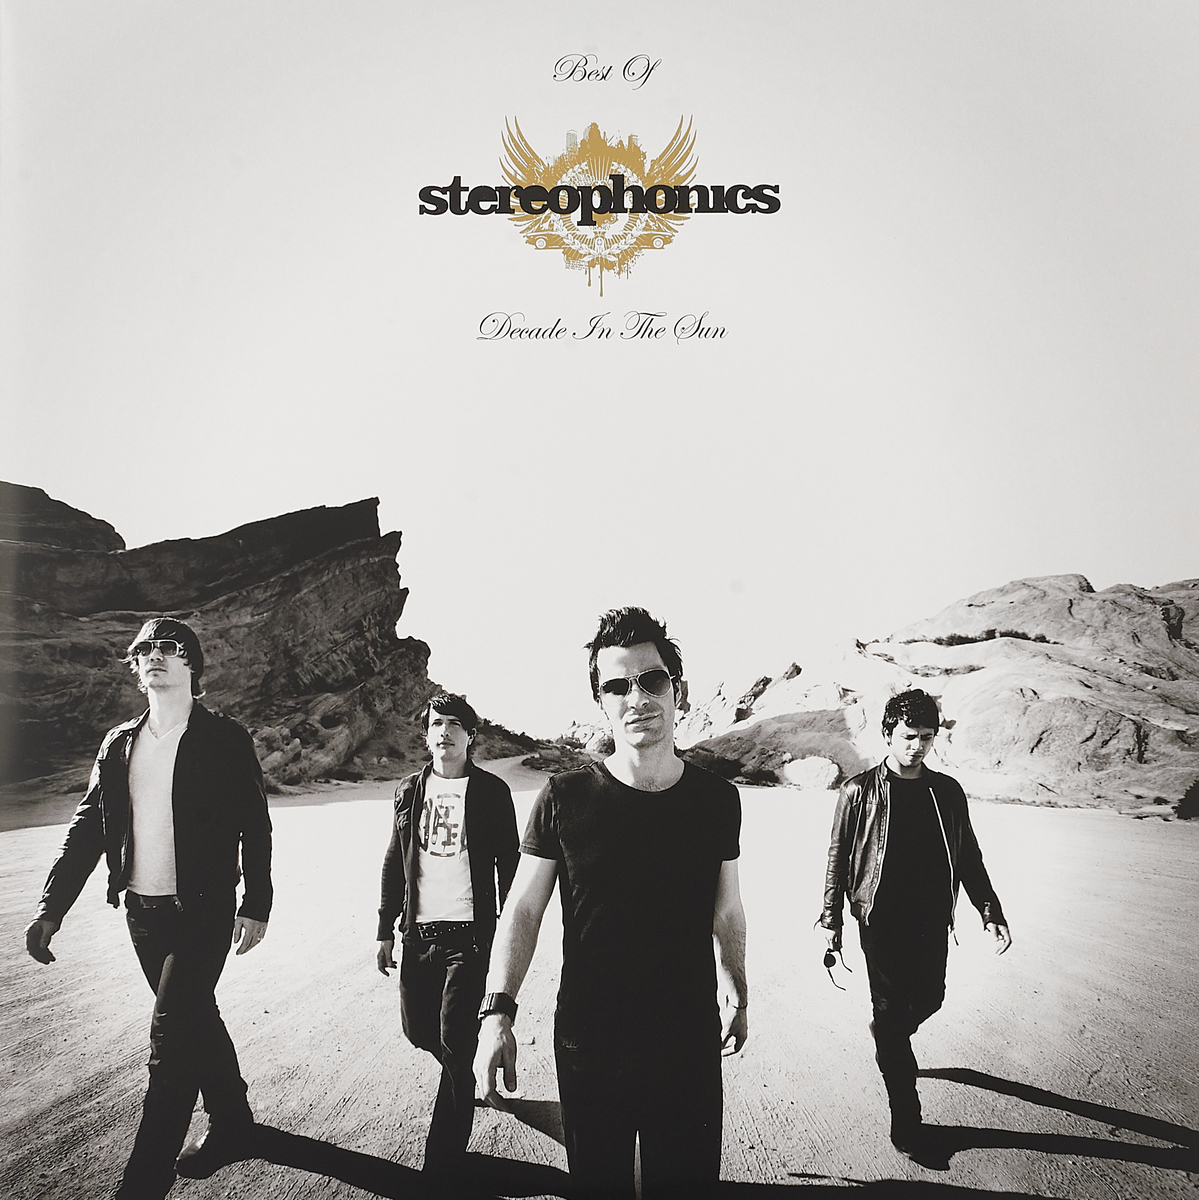 Stereophonics Stereophonics Decade In The Sun - Best Of 2 LP